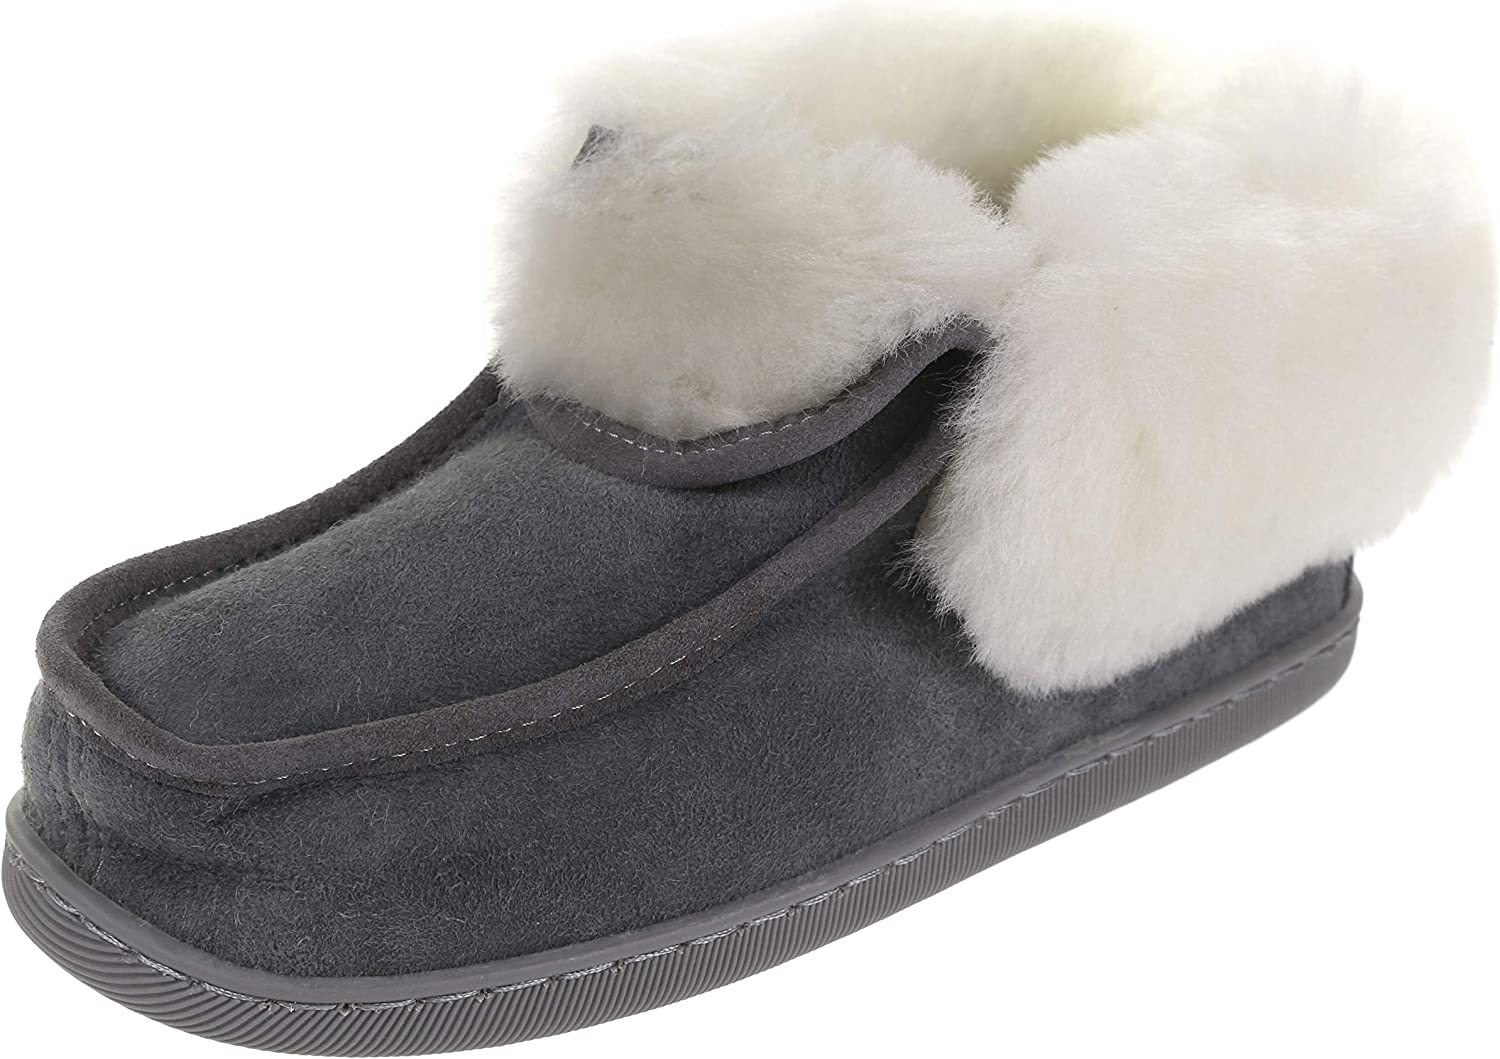 Vogar Womens Leather Moccasin Slippers VG-20 Sheep Wool Lined